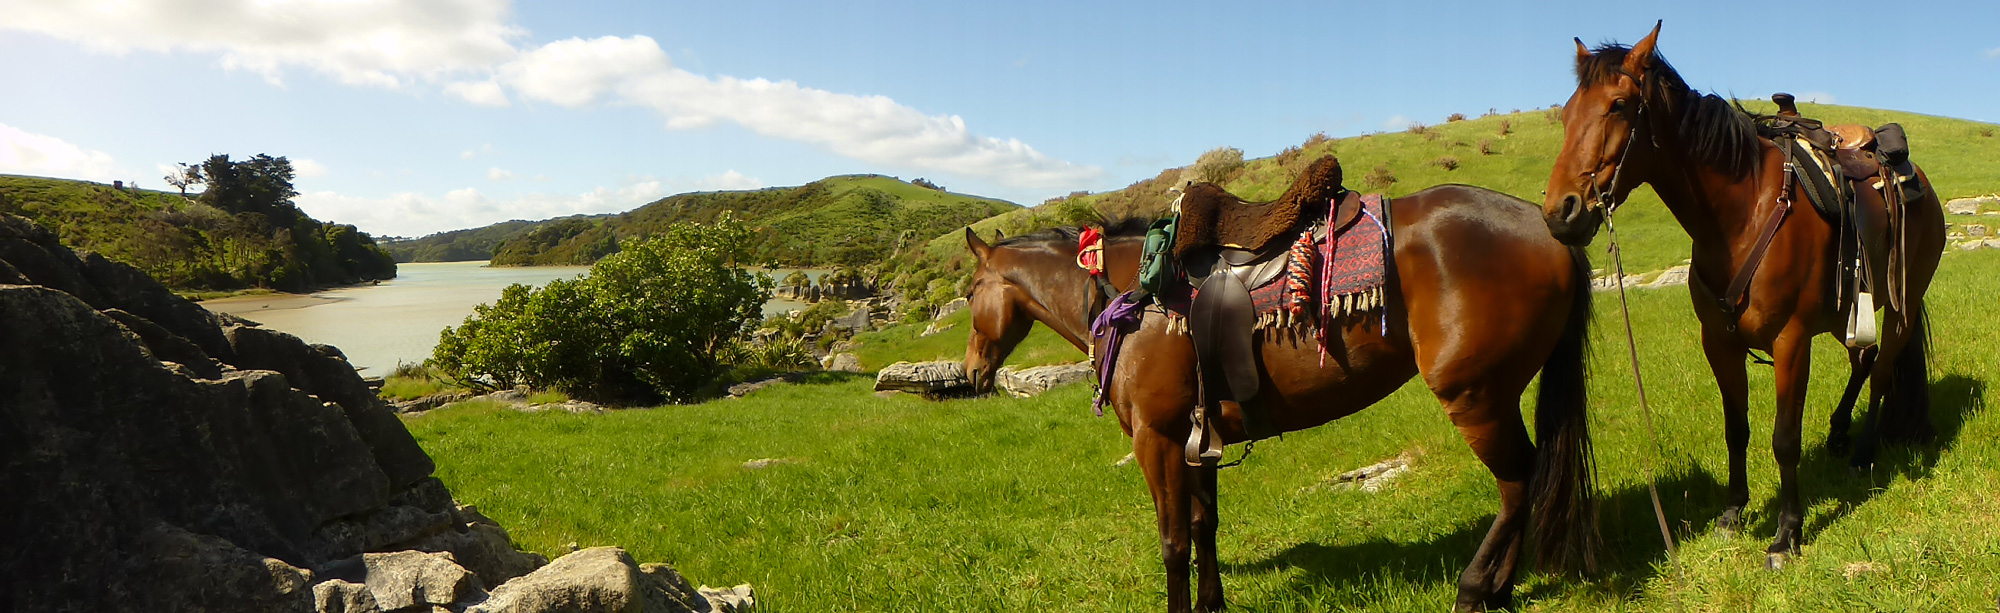 Horse Riding, Raglan Harbour, Waikato New Zealand.